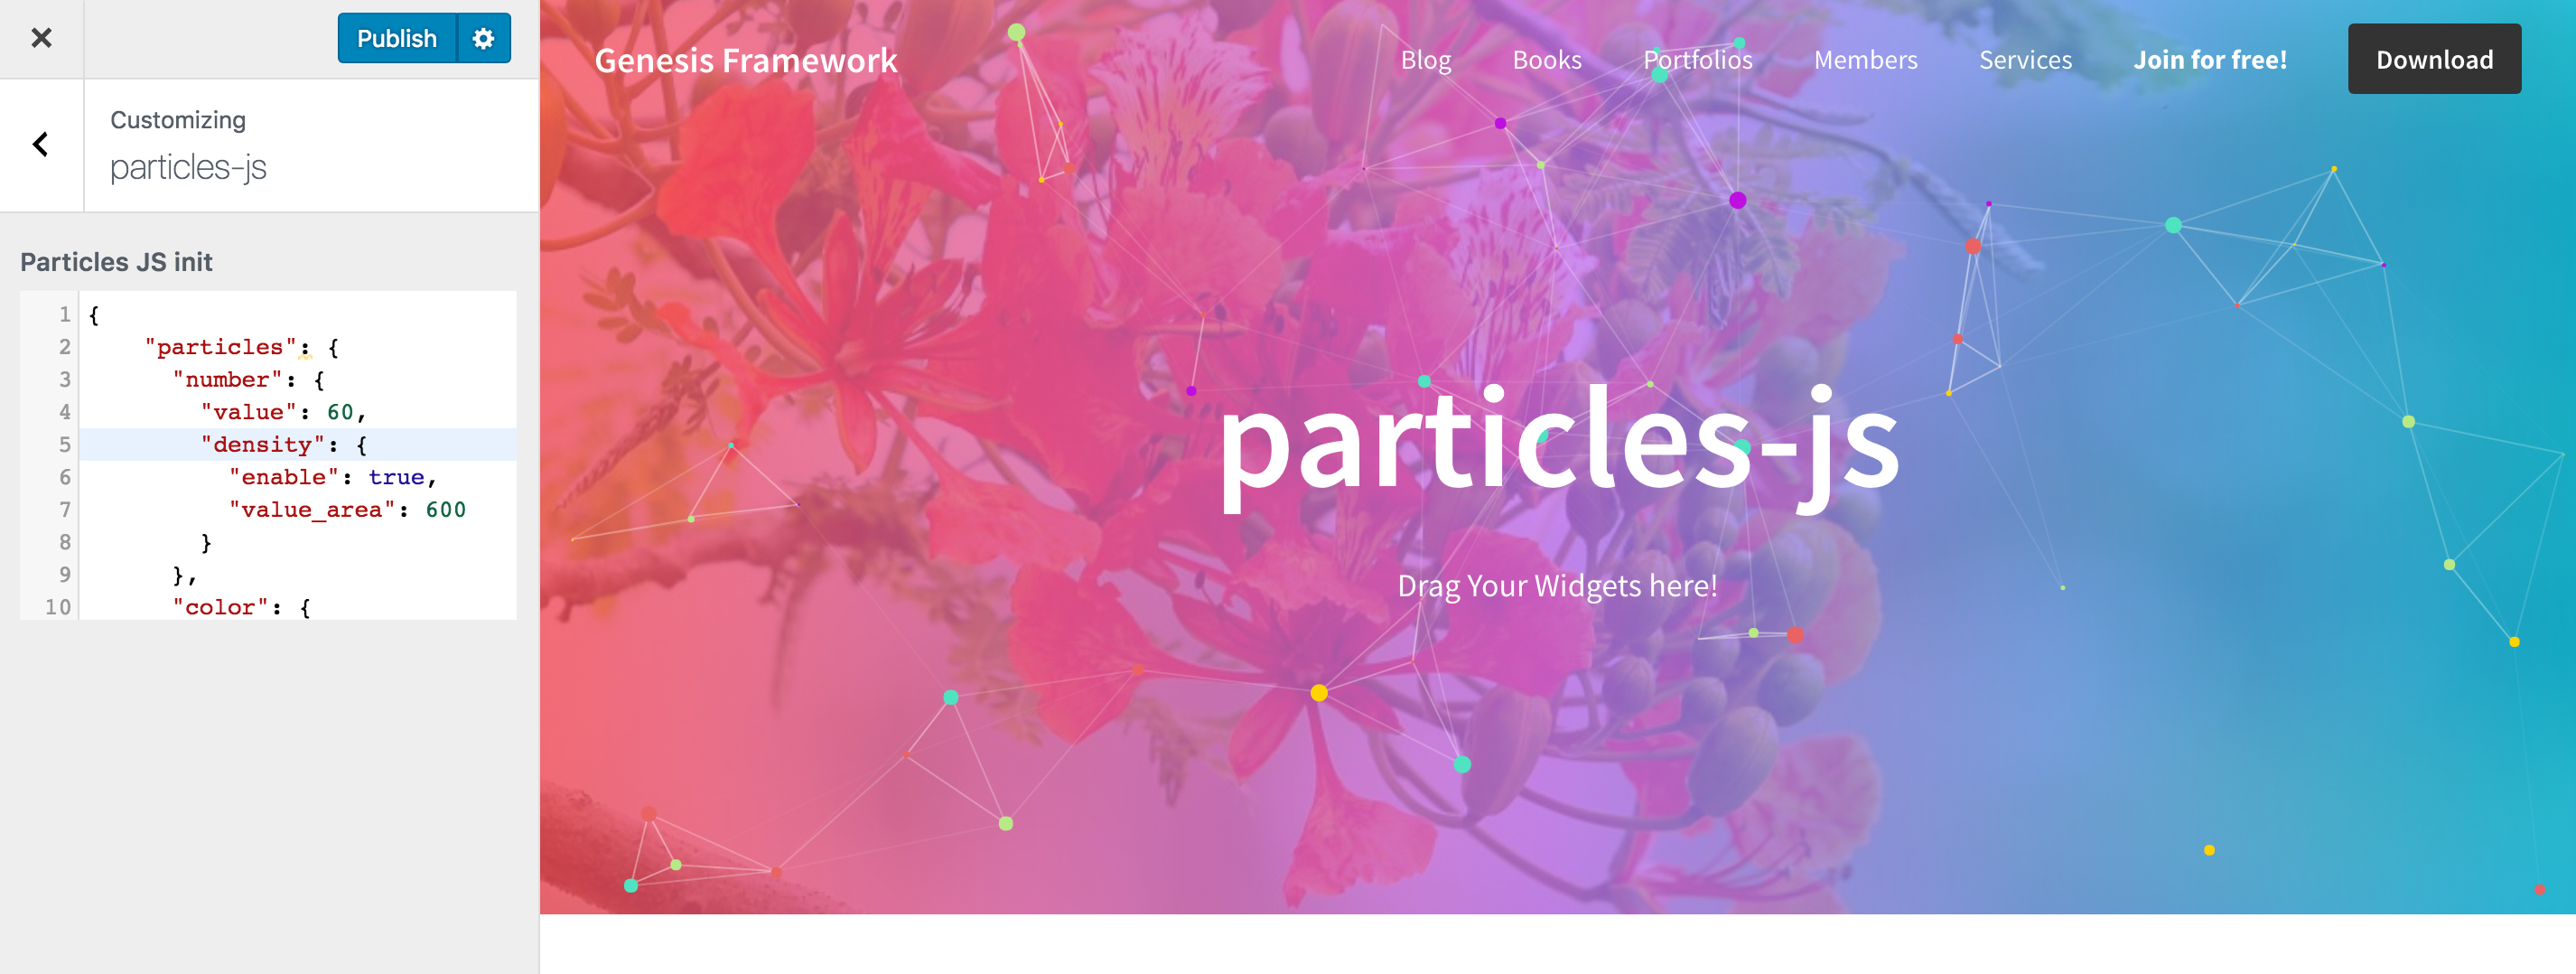 Particles js Background Section using Customizer in Genesis